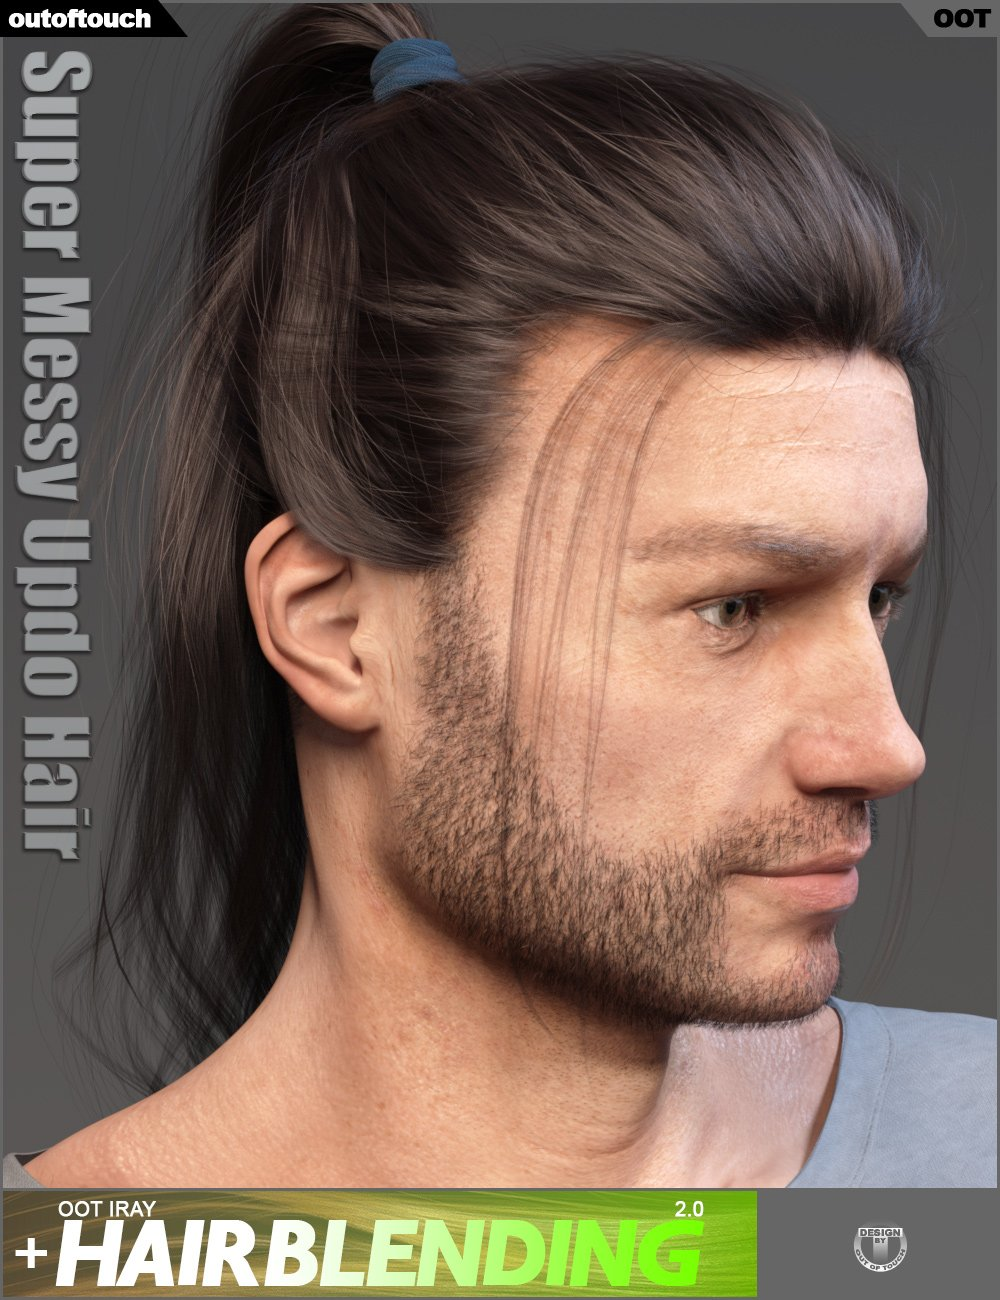 Super Messy Updo Hair for Genesis 3 and 8 by: outoftouch, 3D Models by Daz 3D